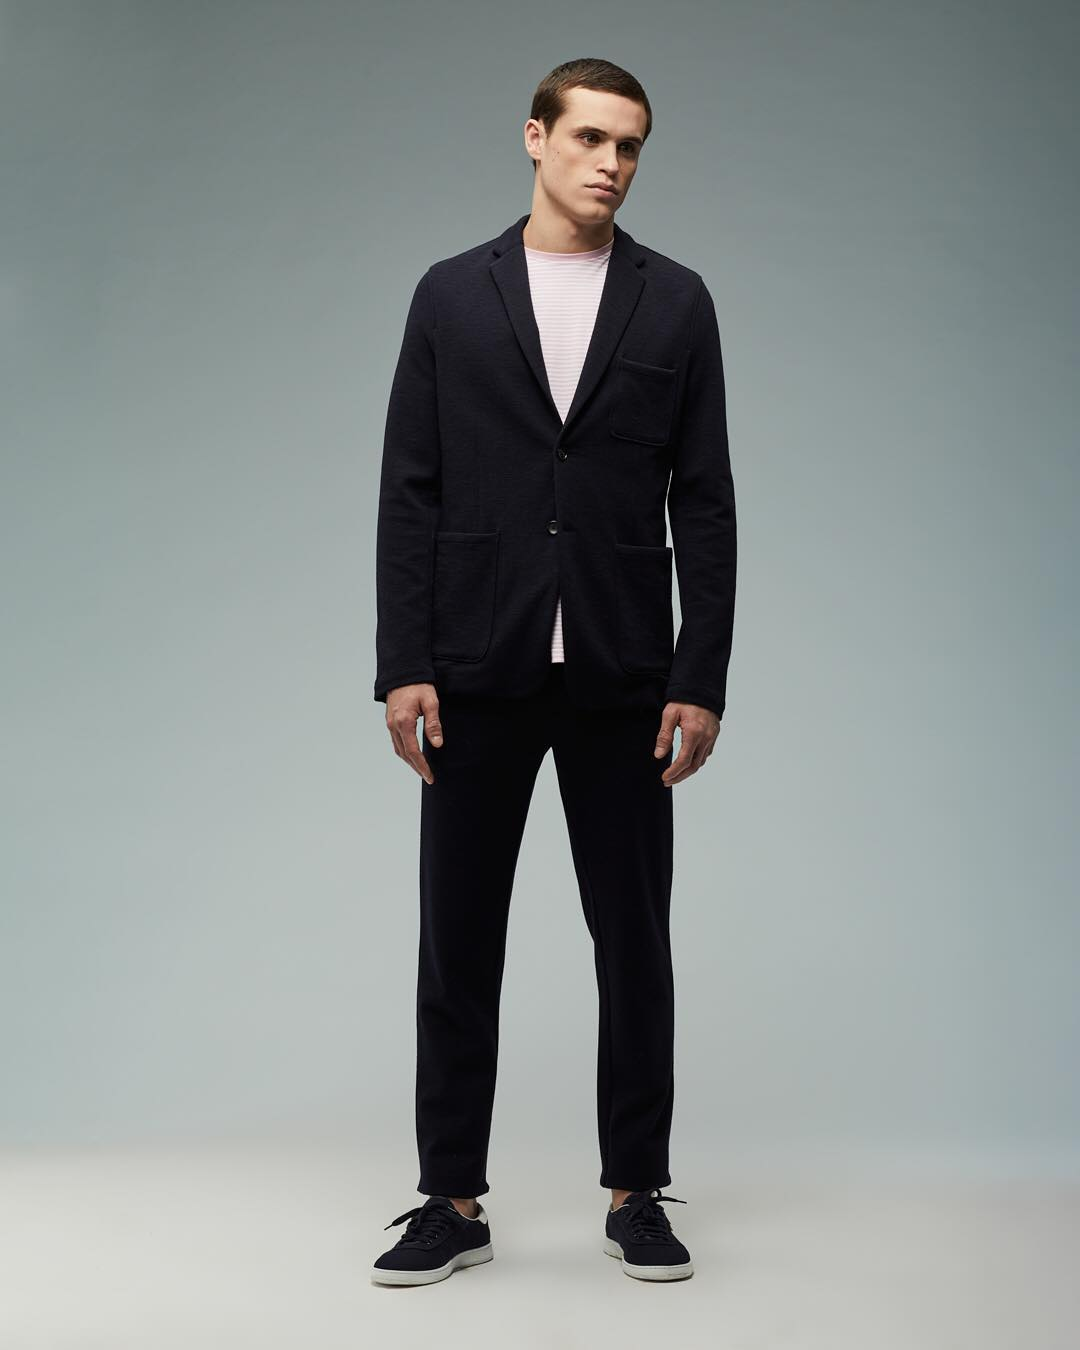 Luxury clothing by Patrick Assaraf